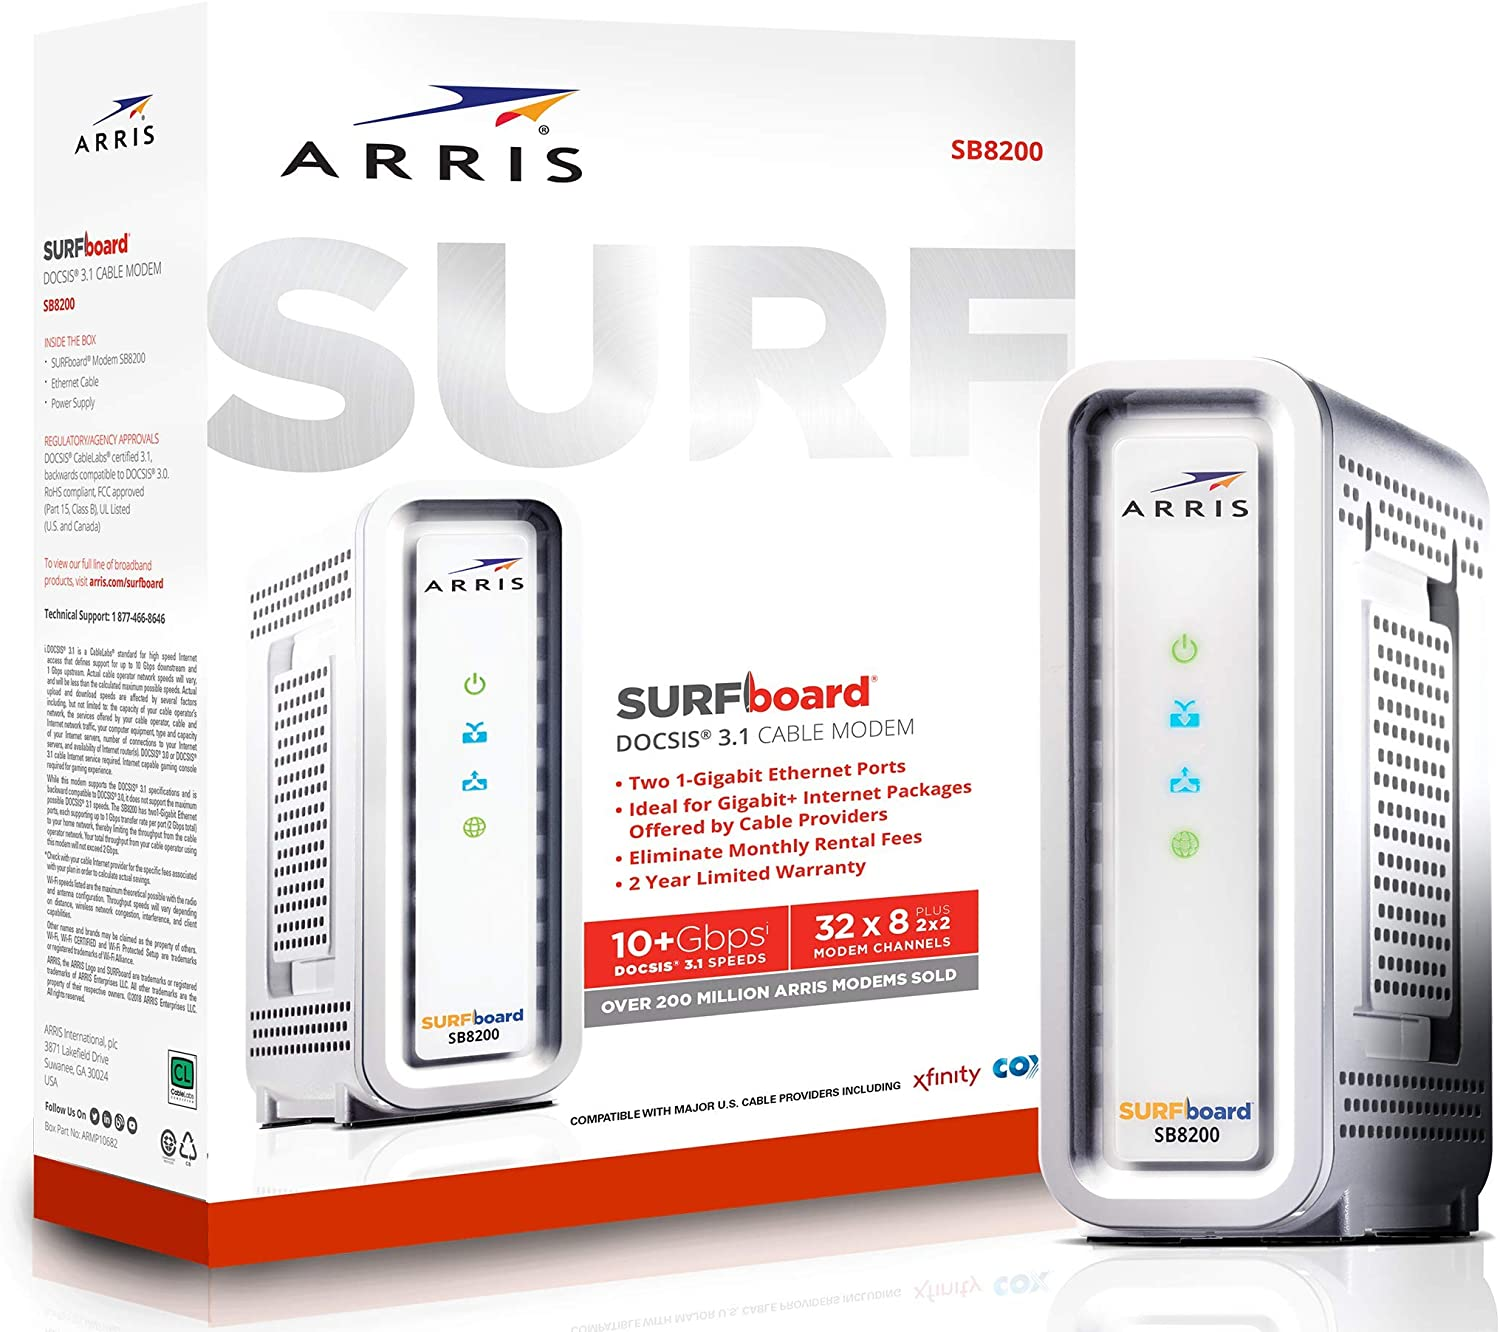 ARRIS SURFboard SB8200 DOCSIS 3.1 Modem Router Combo Gigabit Cable Modem, Approved For Cox, Xfinity & Others